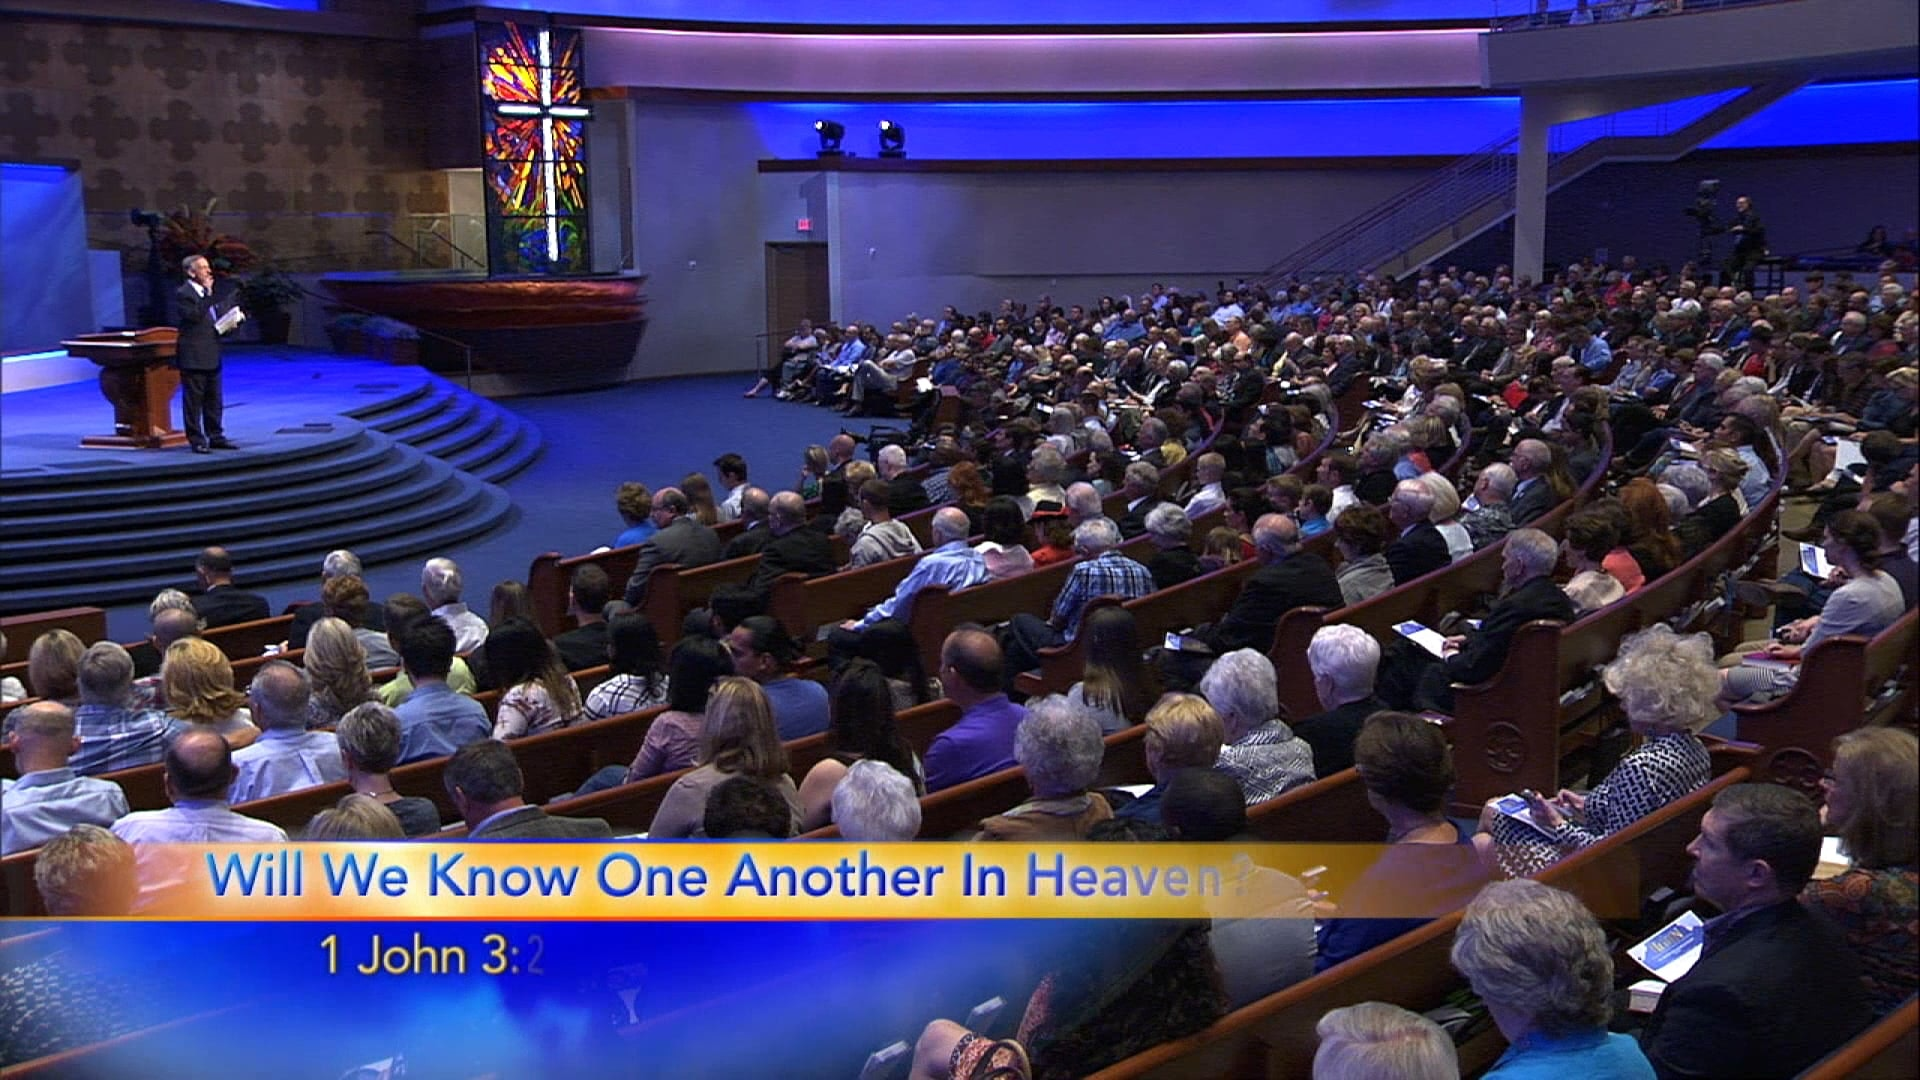 Watch A Place Called Heaven: Will We Know One Another in Heaven?